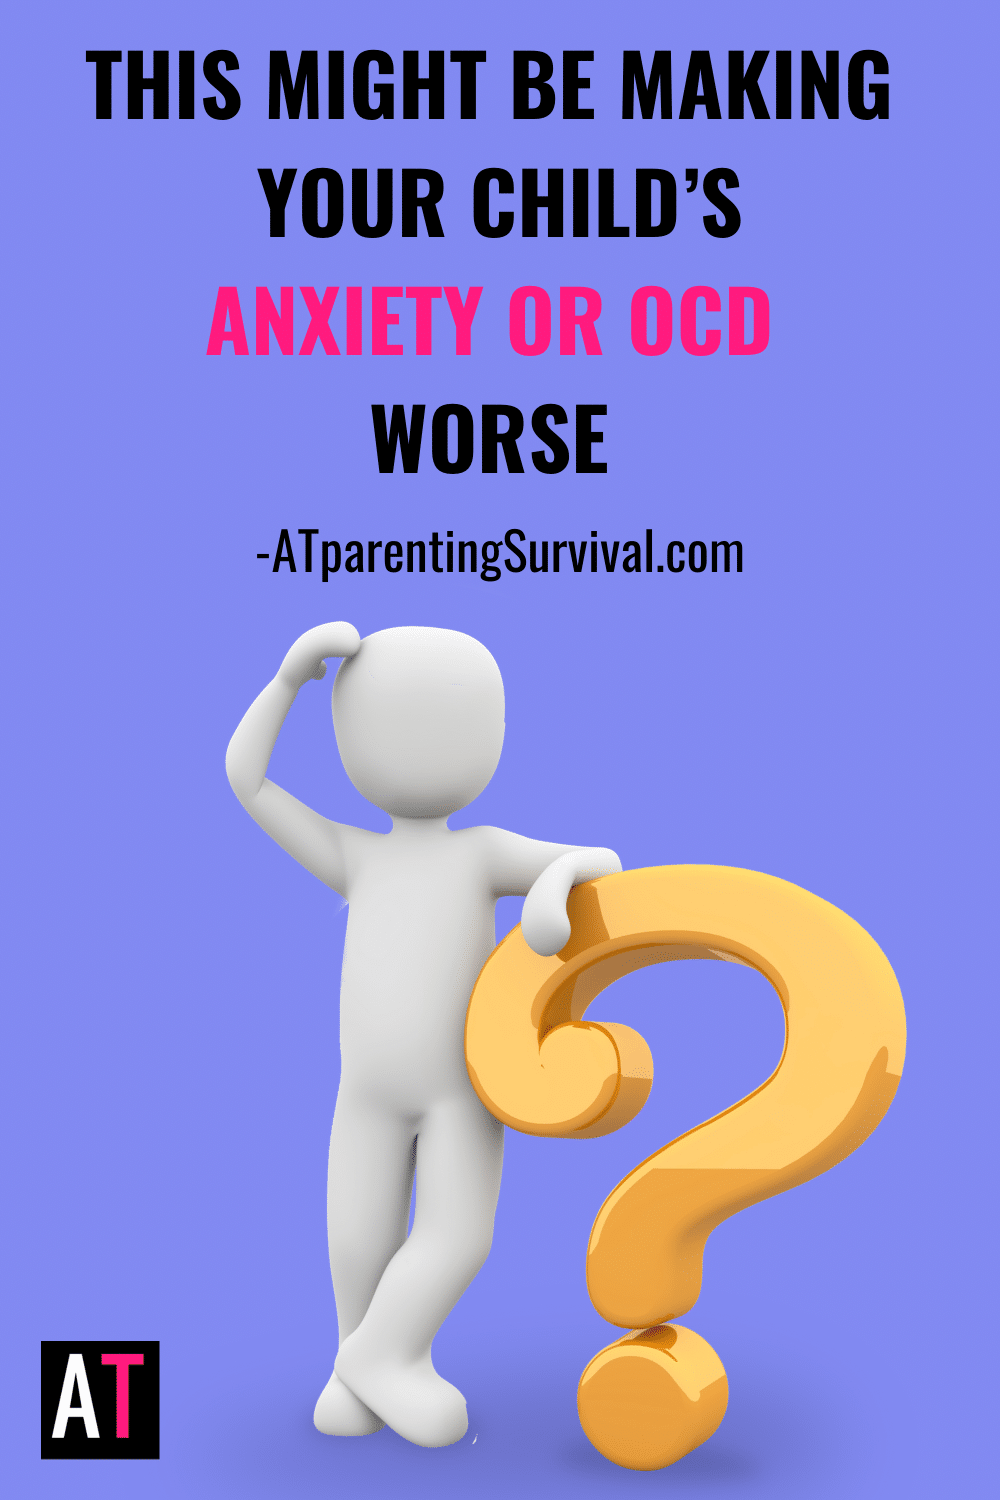 Often resistance is the secret sauce that continues to grow anxiety or OCD. In this week's video I talk about why that is and how to stop that from happening.